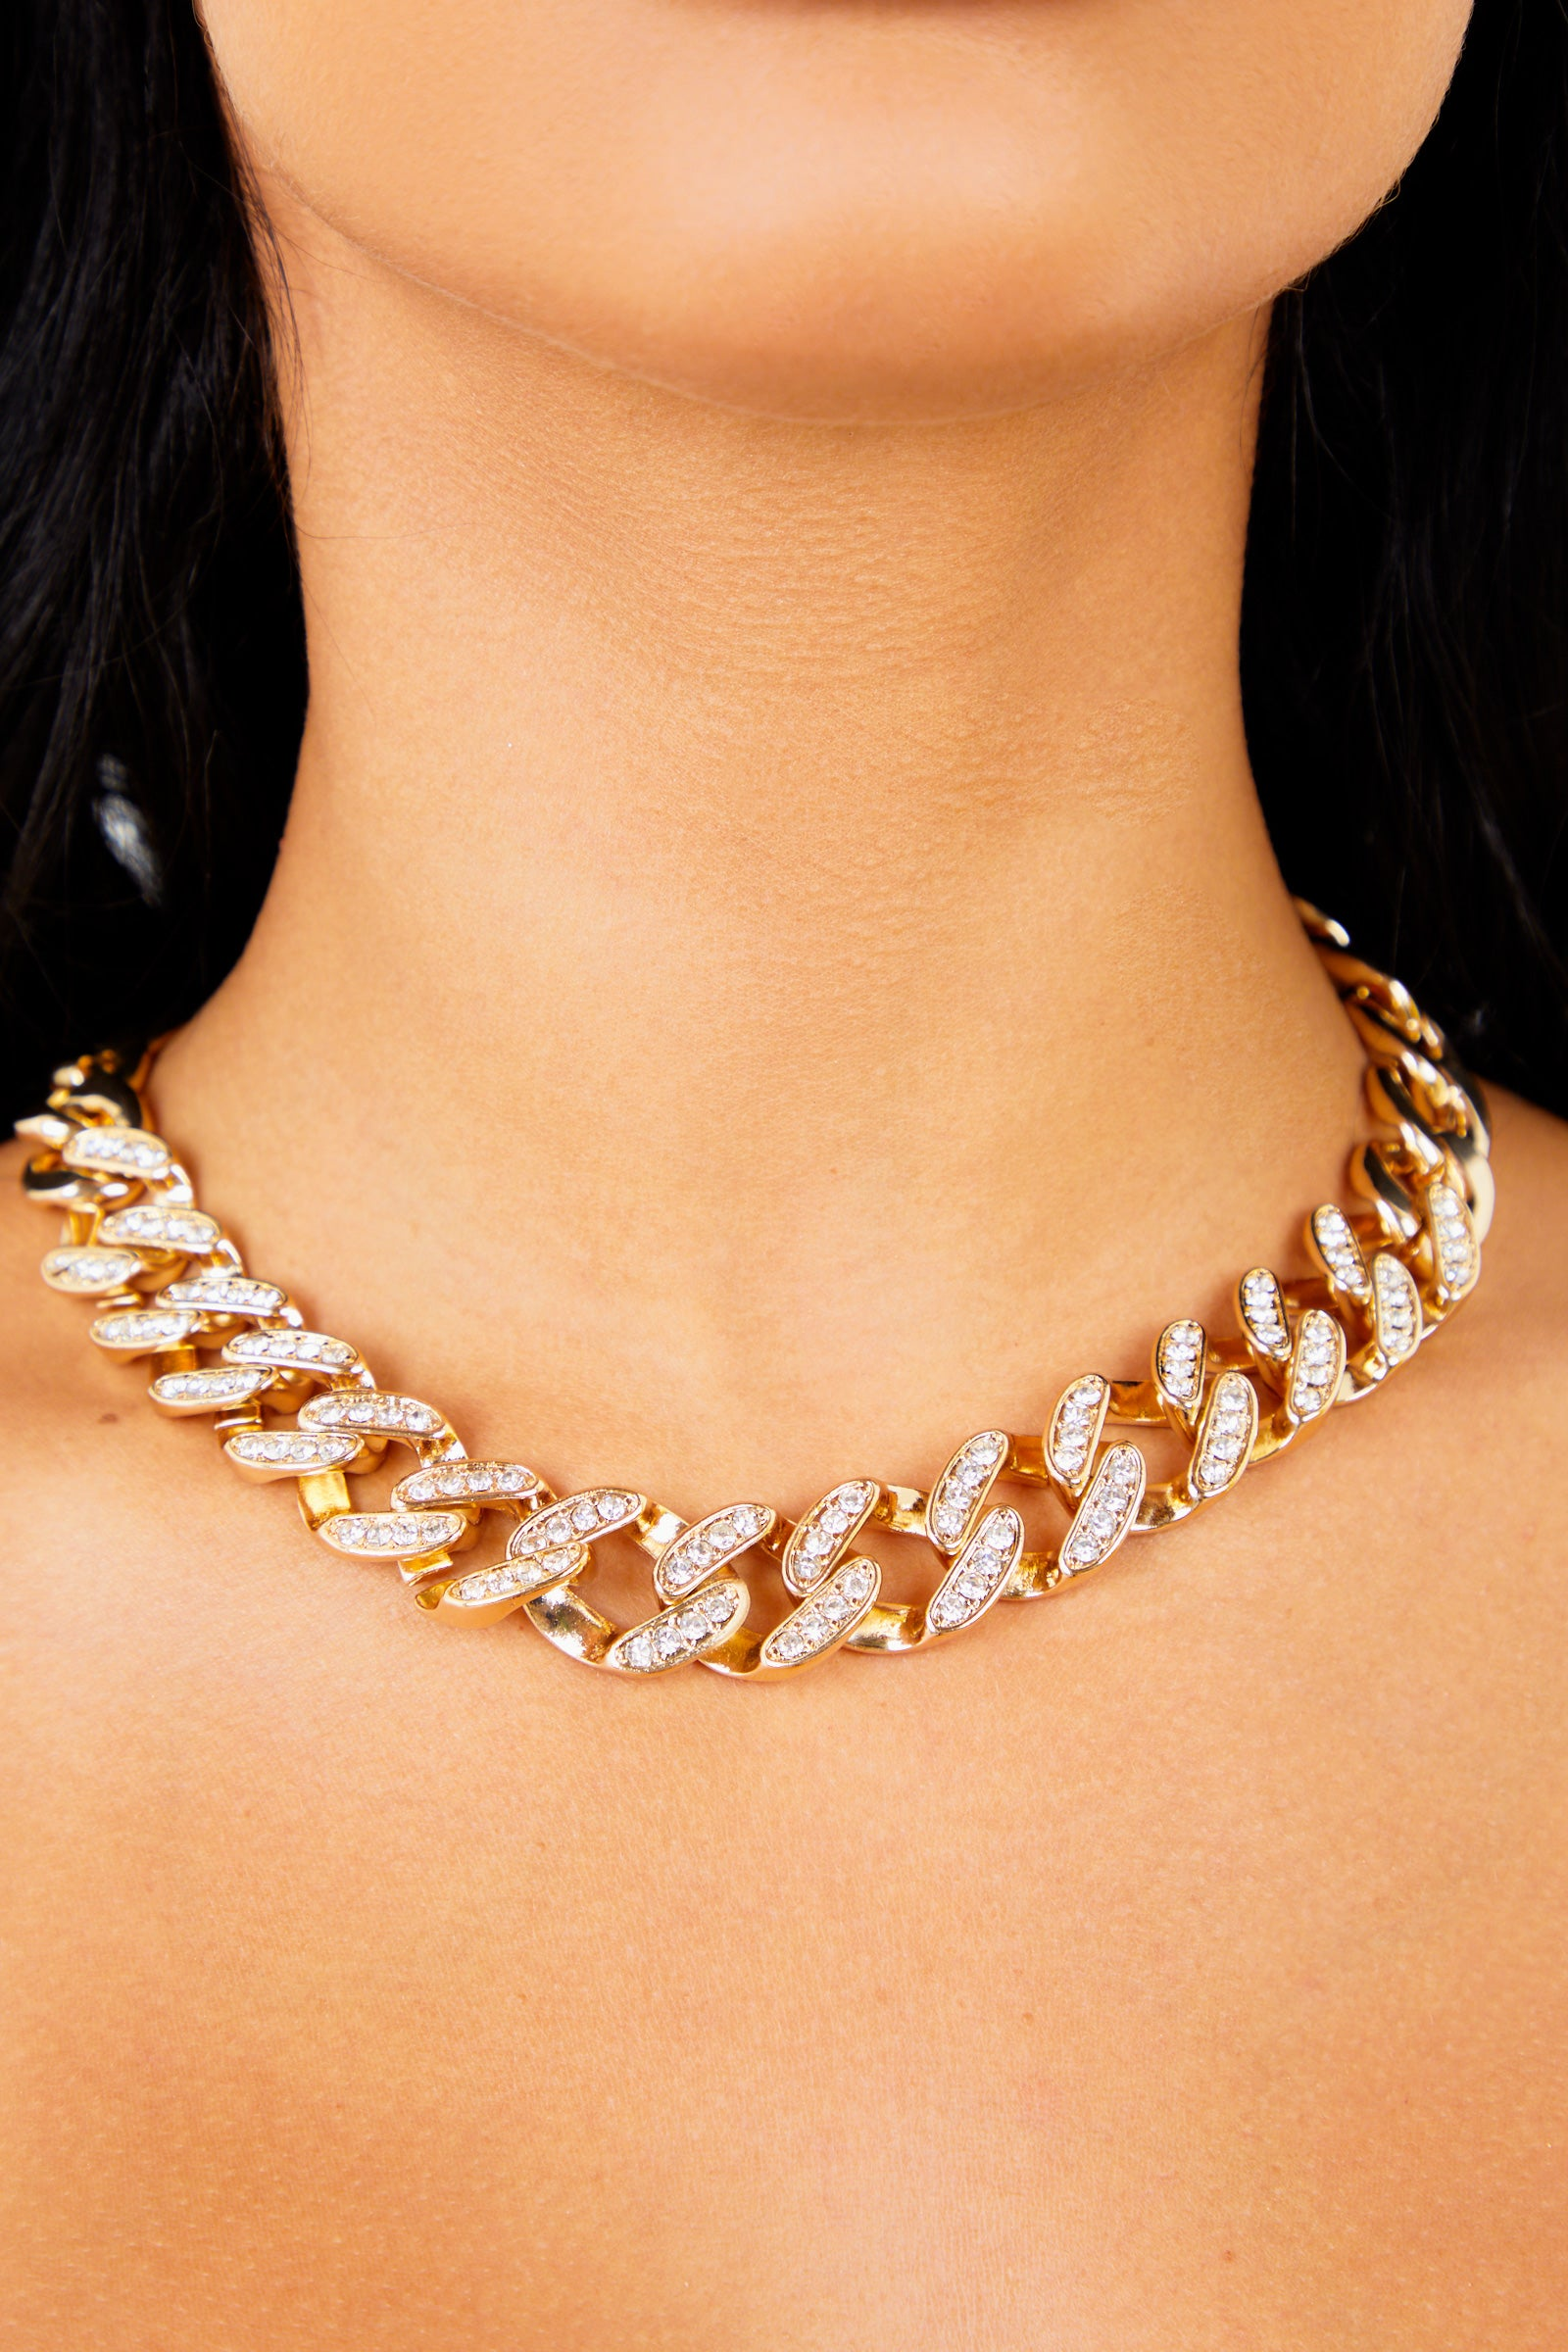 Thick Diamond Chain Necklace - Gold